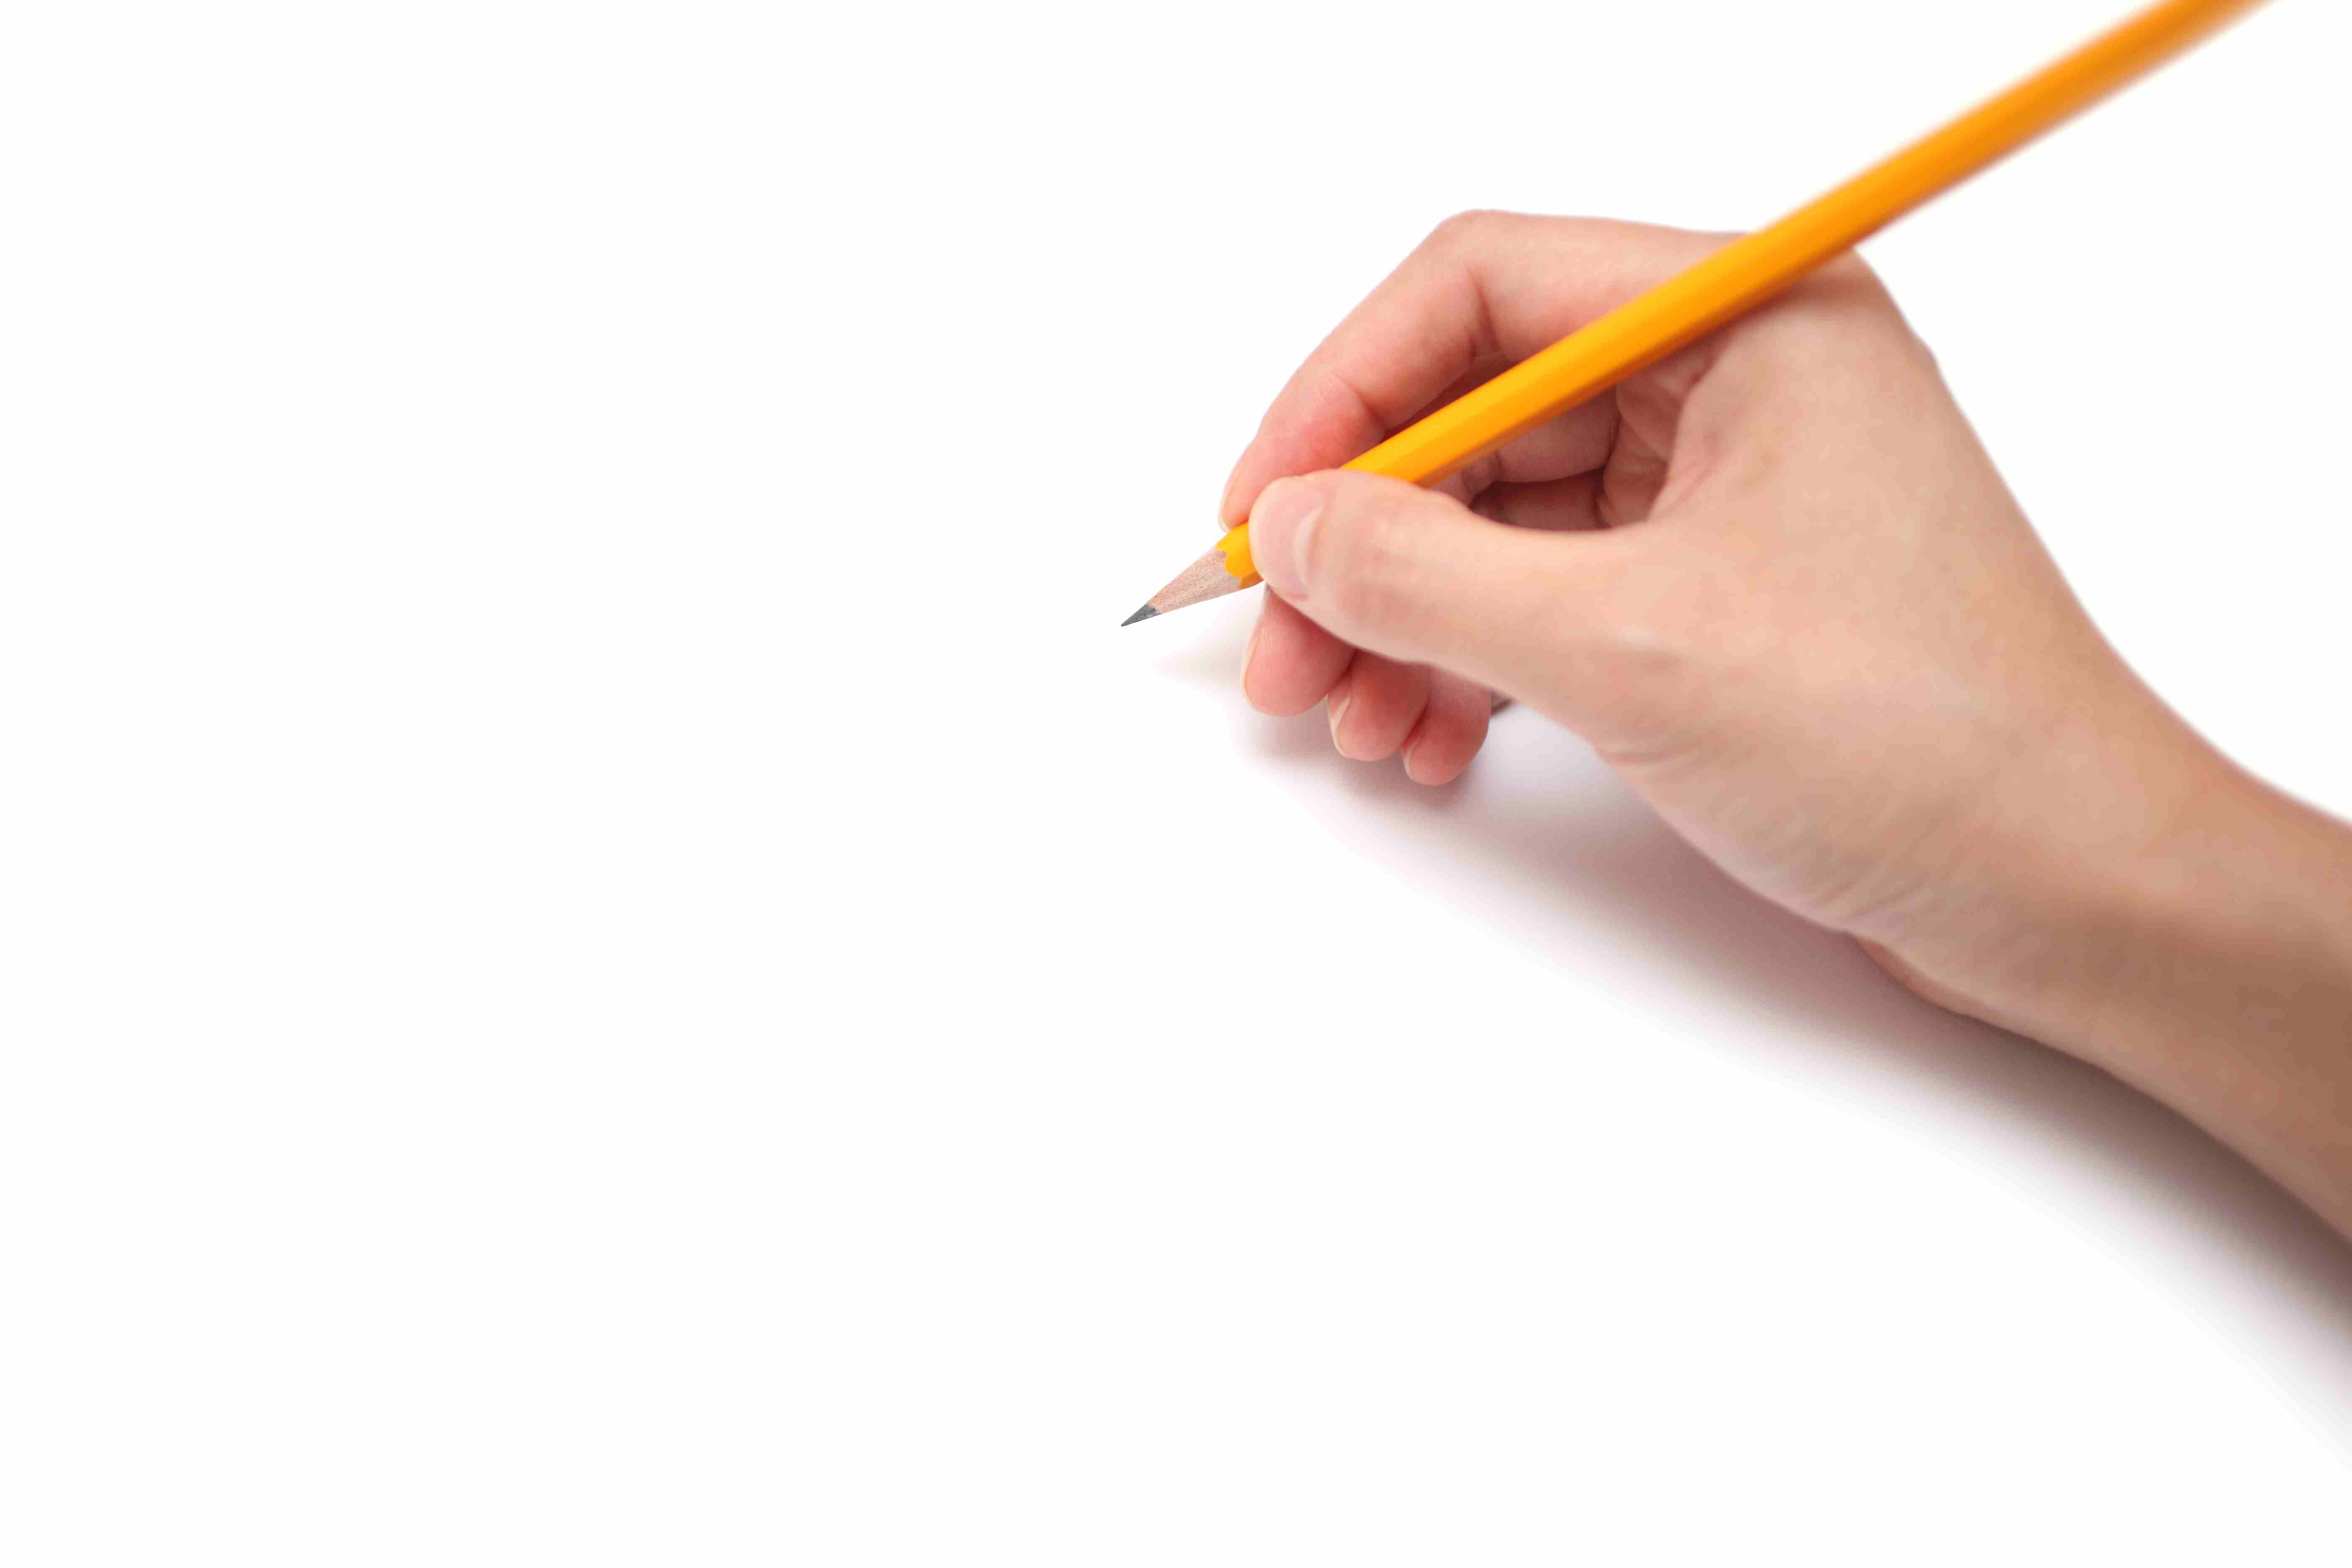 A hand is holding a pencil ready to draw, isolated on white background